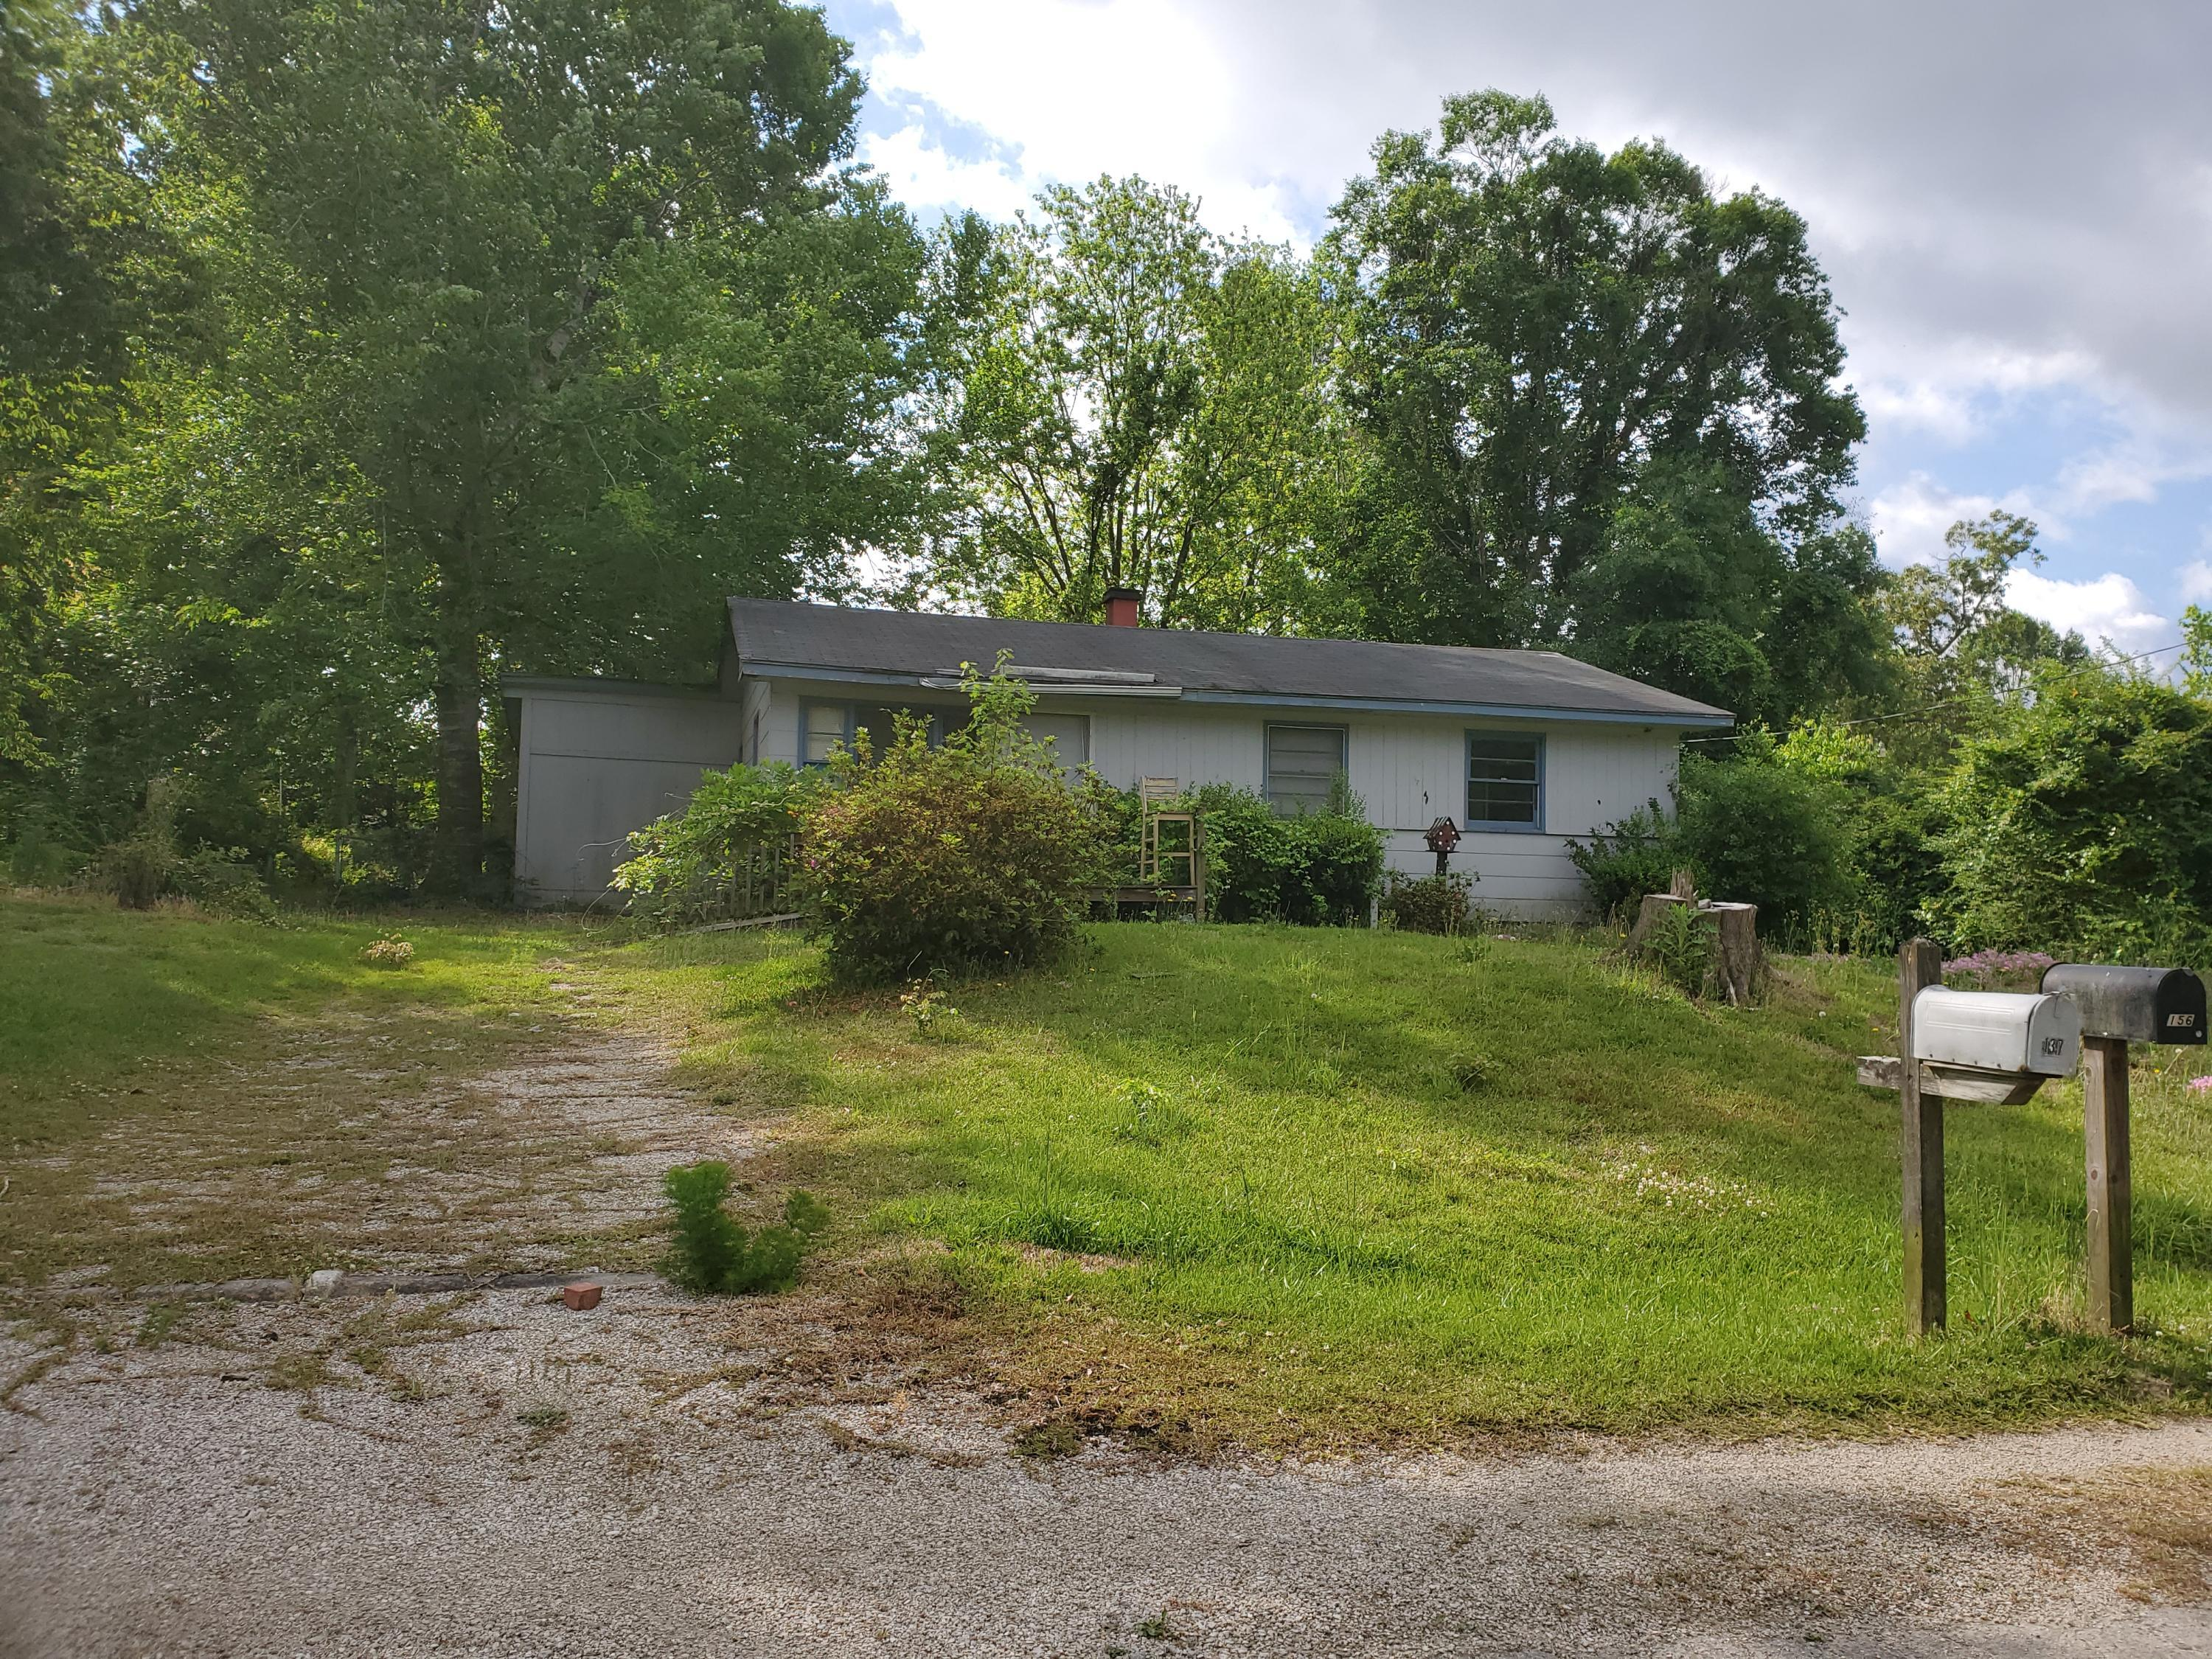 Here is a fabulous opportunity for a fixer up and you to close your eyes and imagine what memories you could make with this 3 bedroom 1 bathroom home. Property being sold as is. Seller will make no repairs. Buyer to verify property lines as no survey is available. Listing Agent is related to seller.